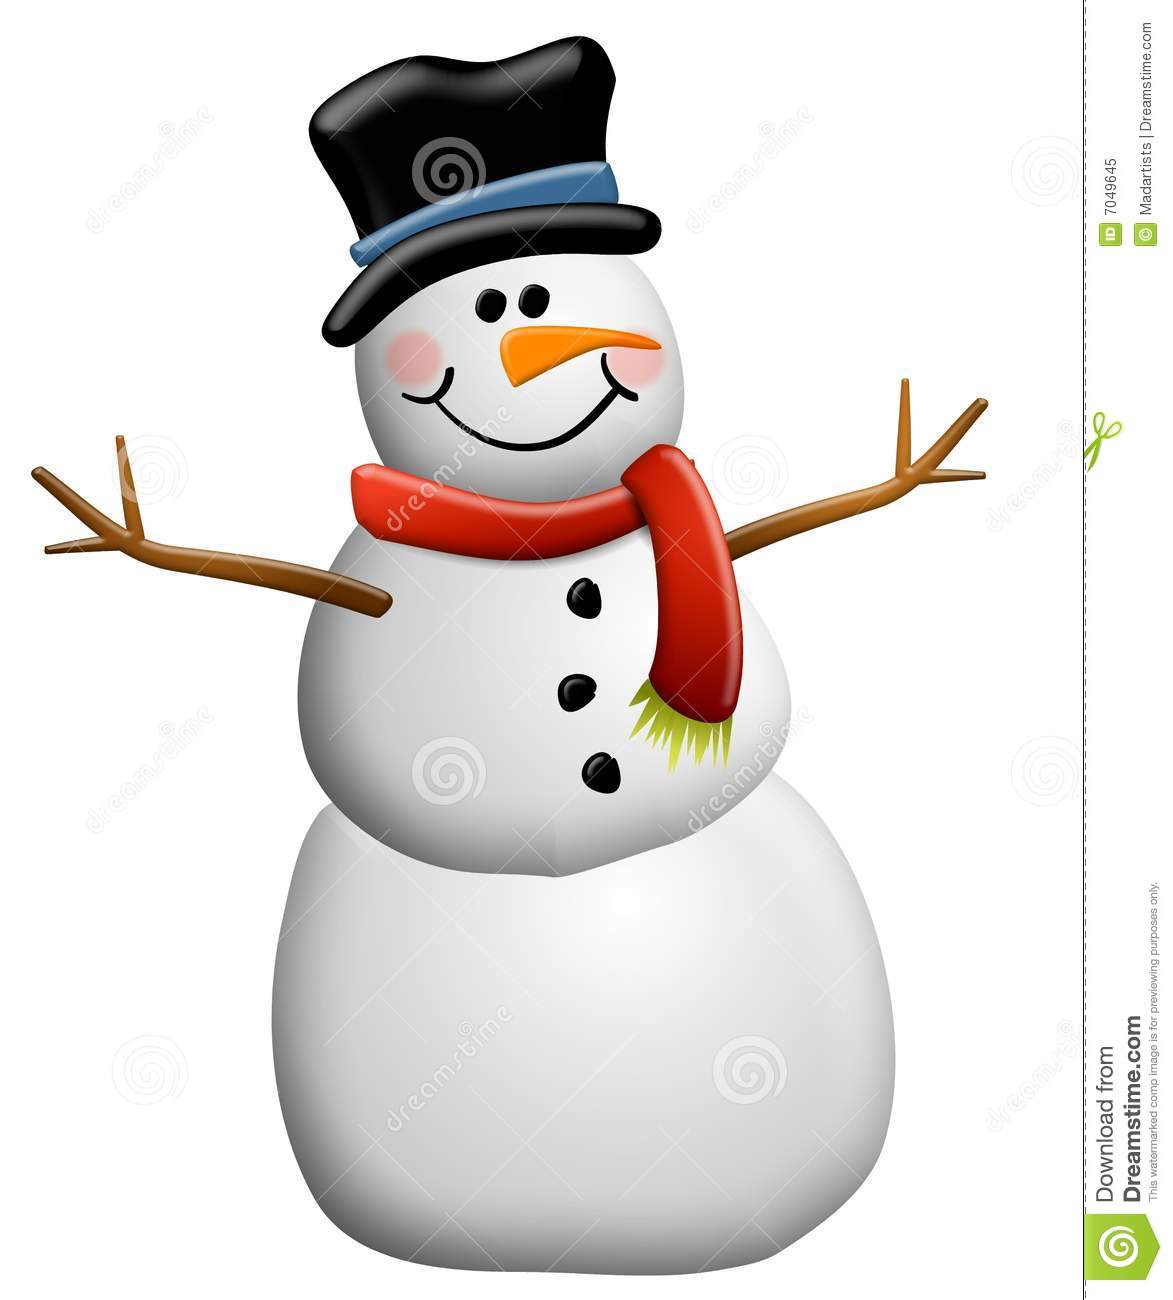 Free stock clipart vector black and white library Snowman Clip Art Isolated Royalty Free Stock Photo - Image: 7049645 vector black and white library